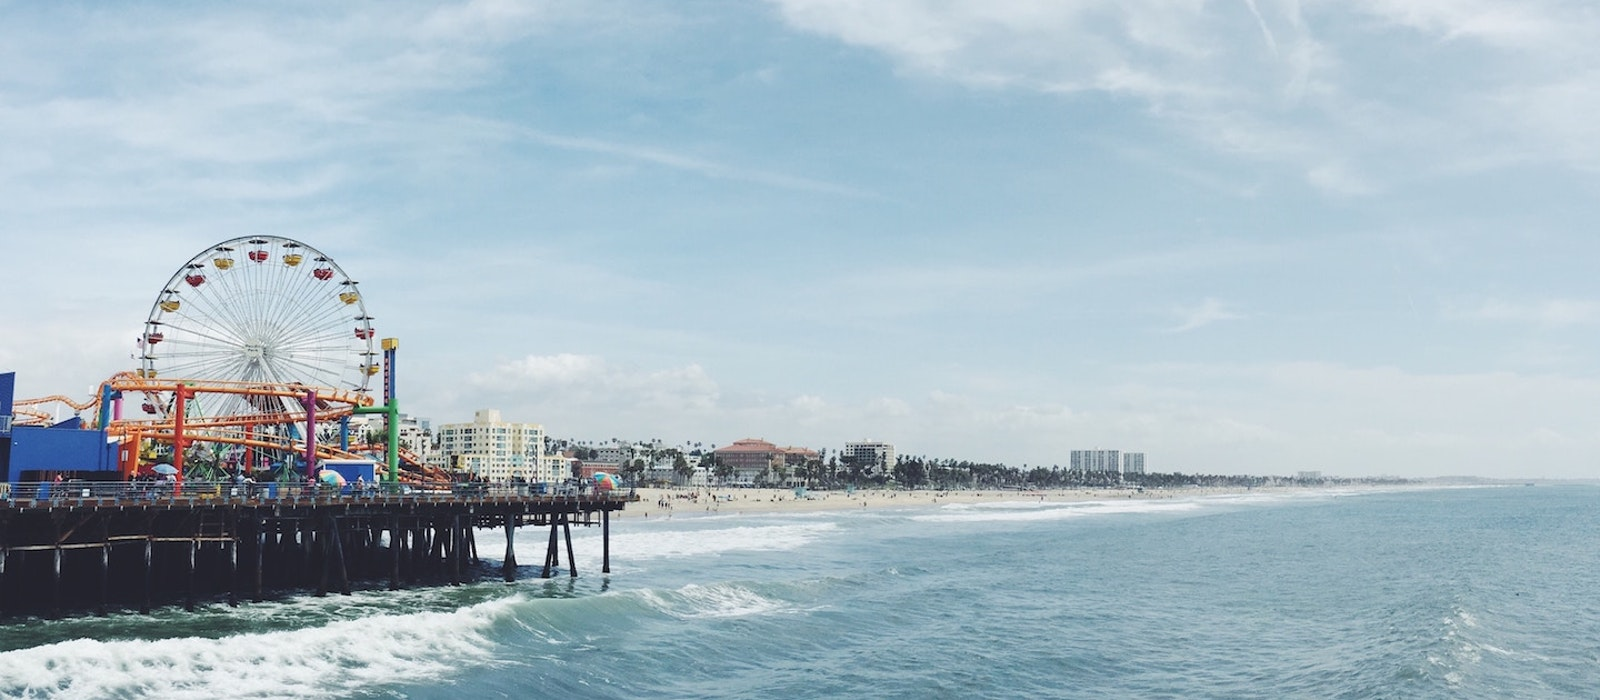 You can experience an active and culturally rich trip to L.A. without spending a lot of money.